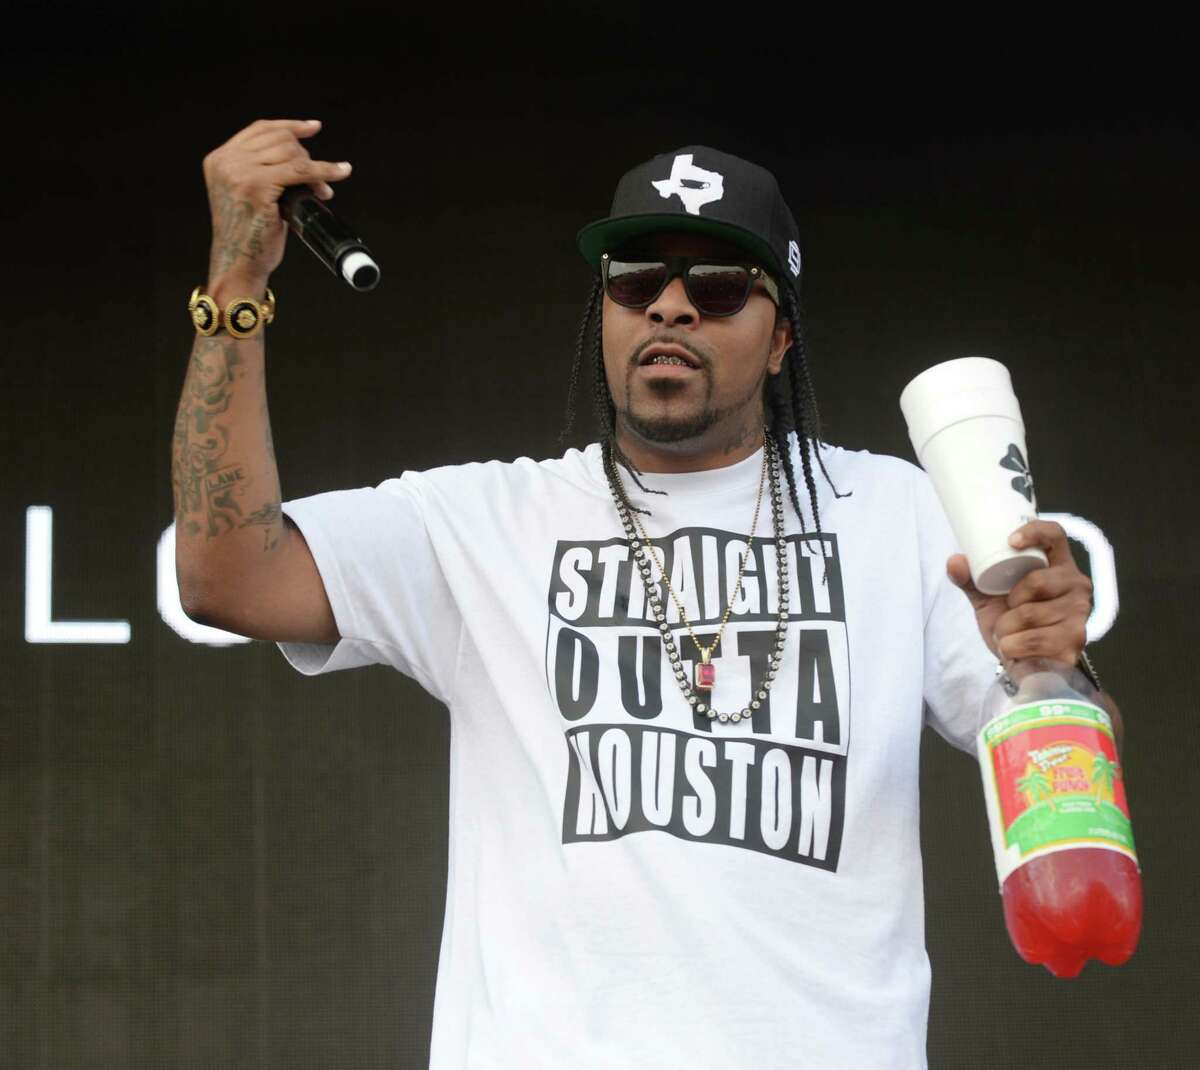 Oct. 17, 2018 Lil Flip, Houston rapper Missed it Rockets lost to the Pelicans, 131-112